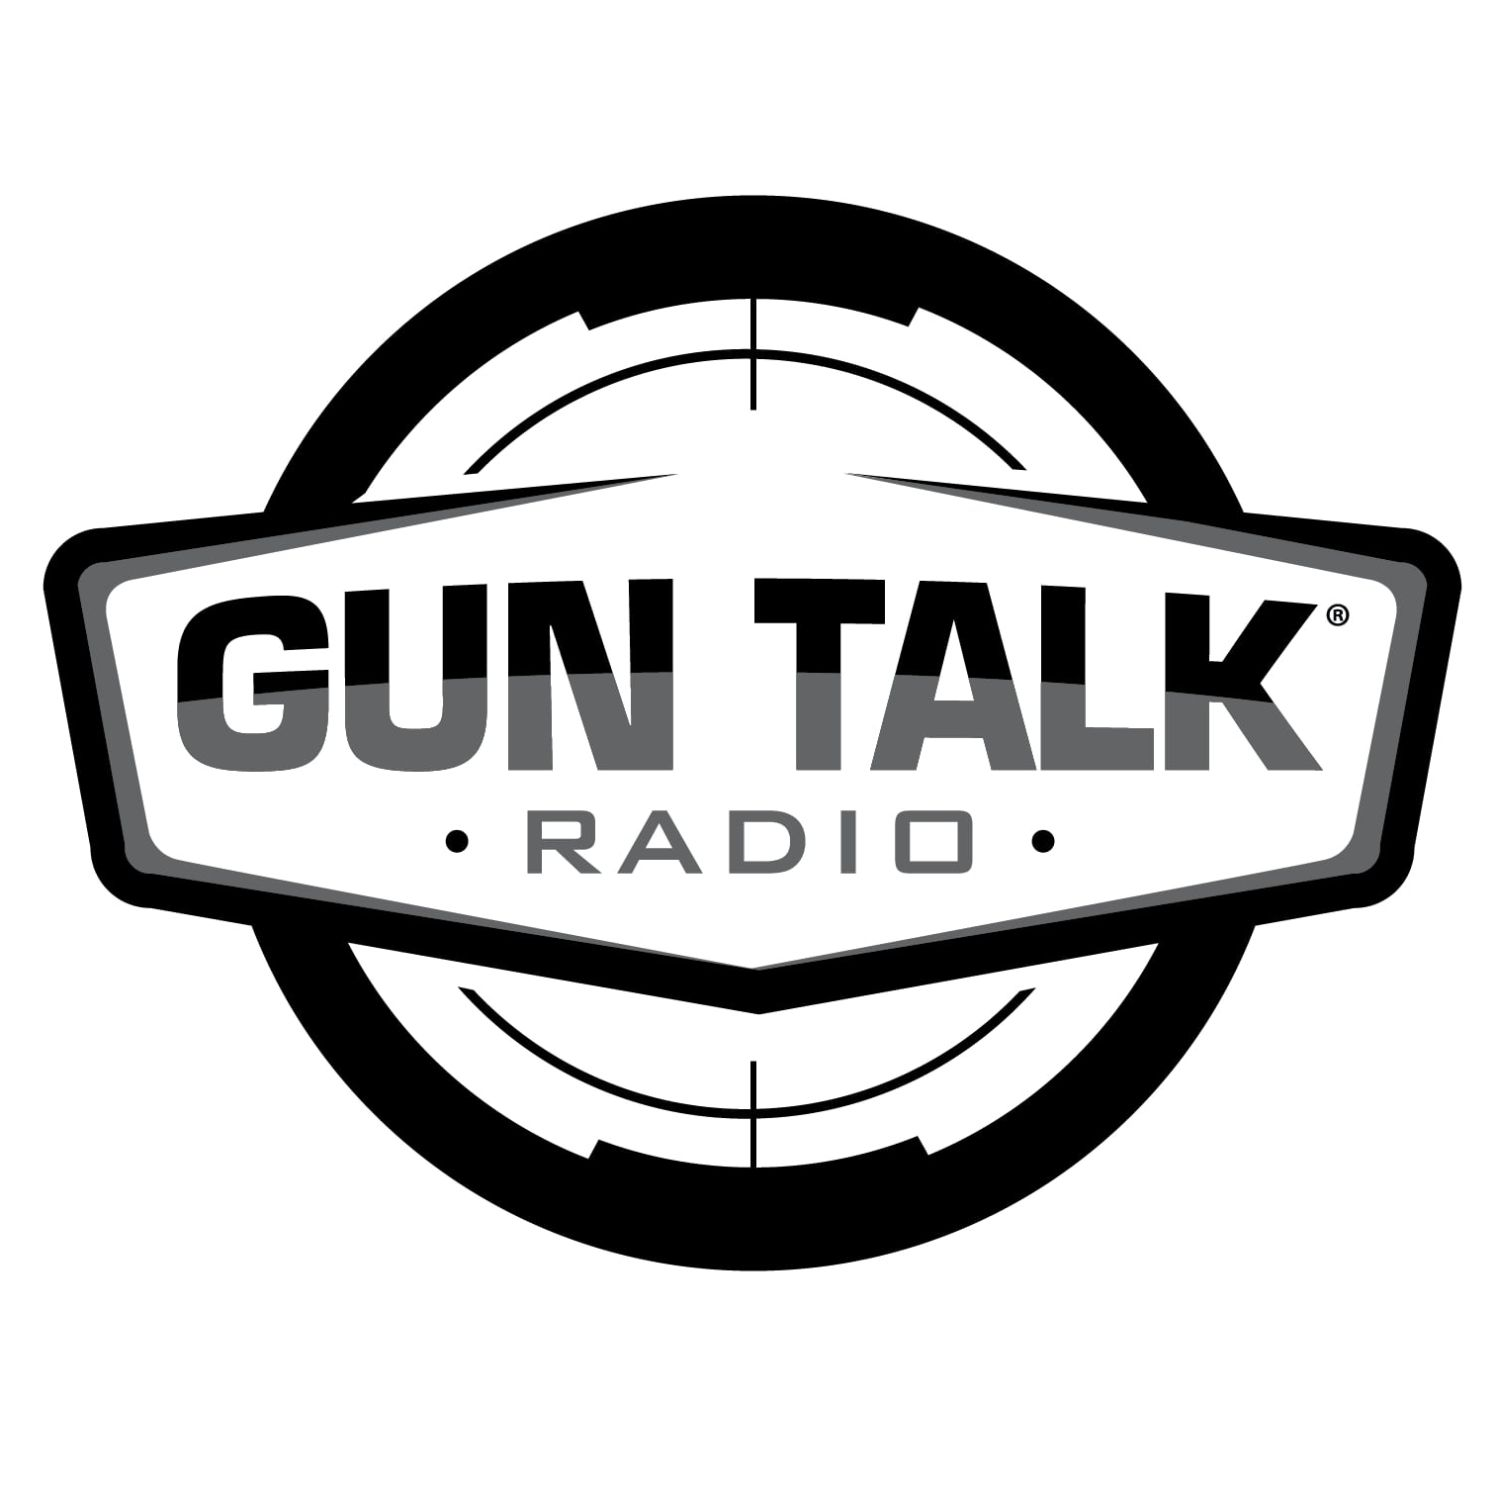 Artwork for Guntalk 2009-06-28 Part C